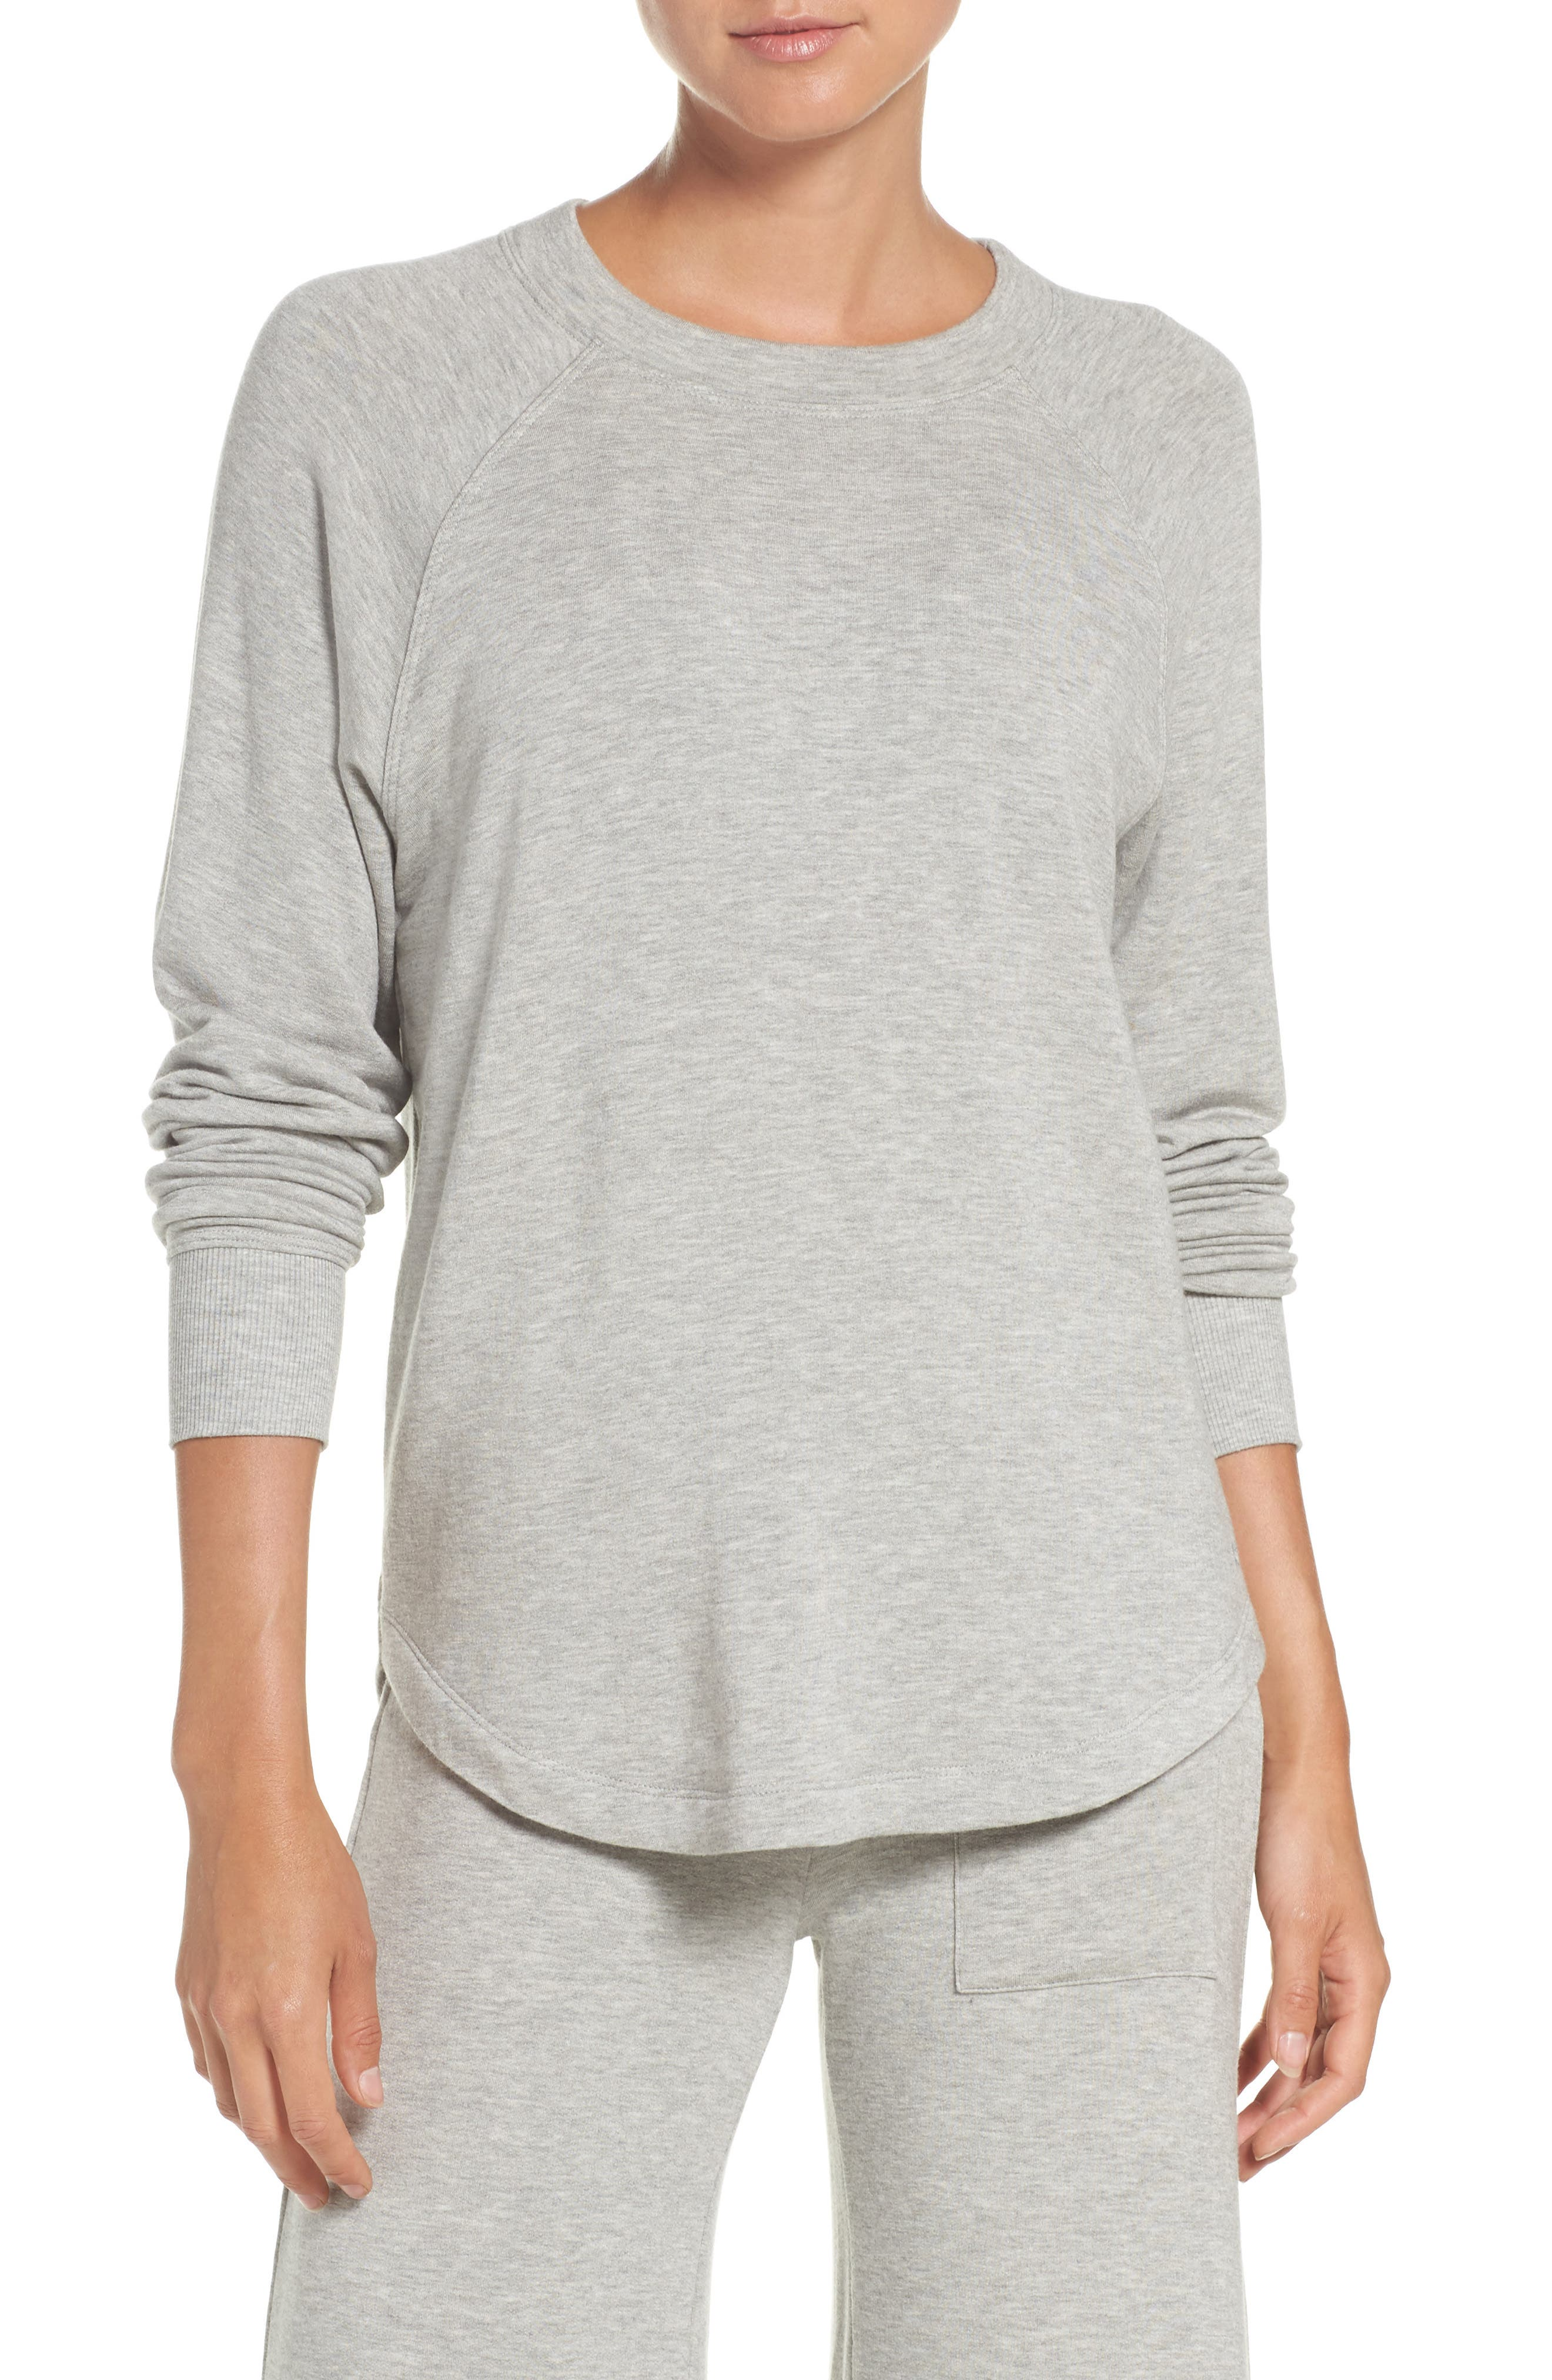 SPLITS59 Warm-Up Pullover